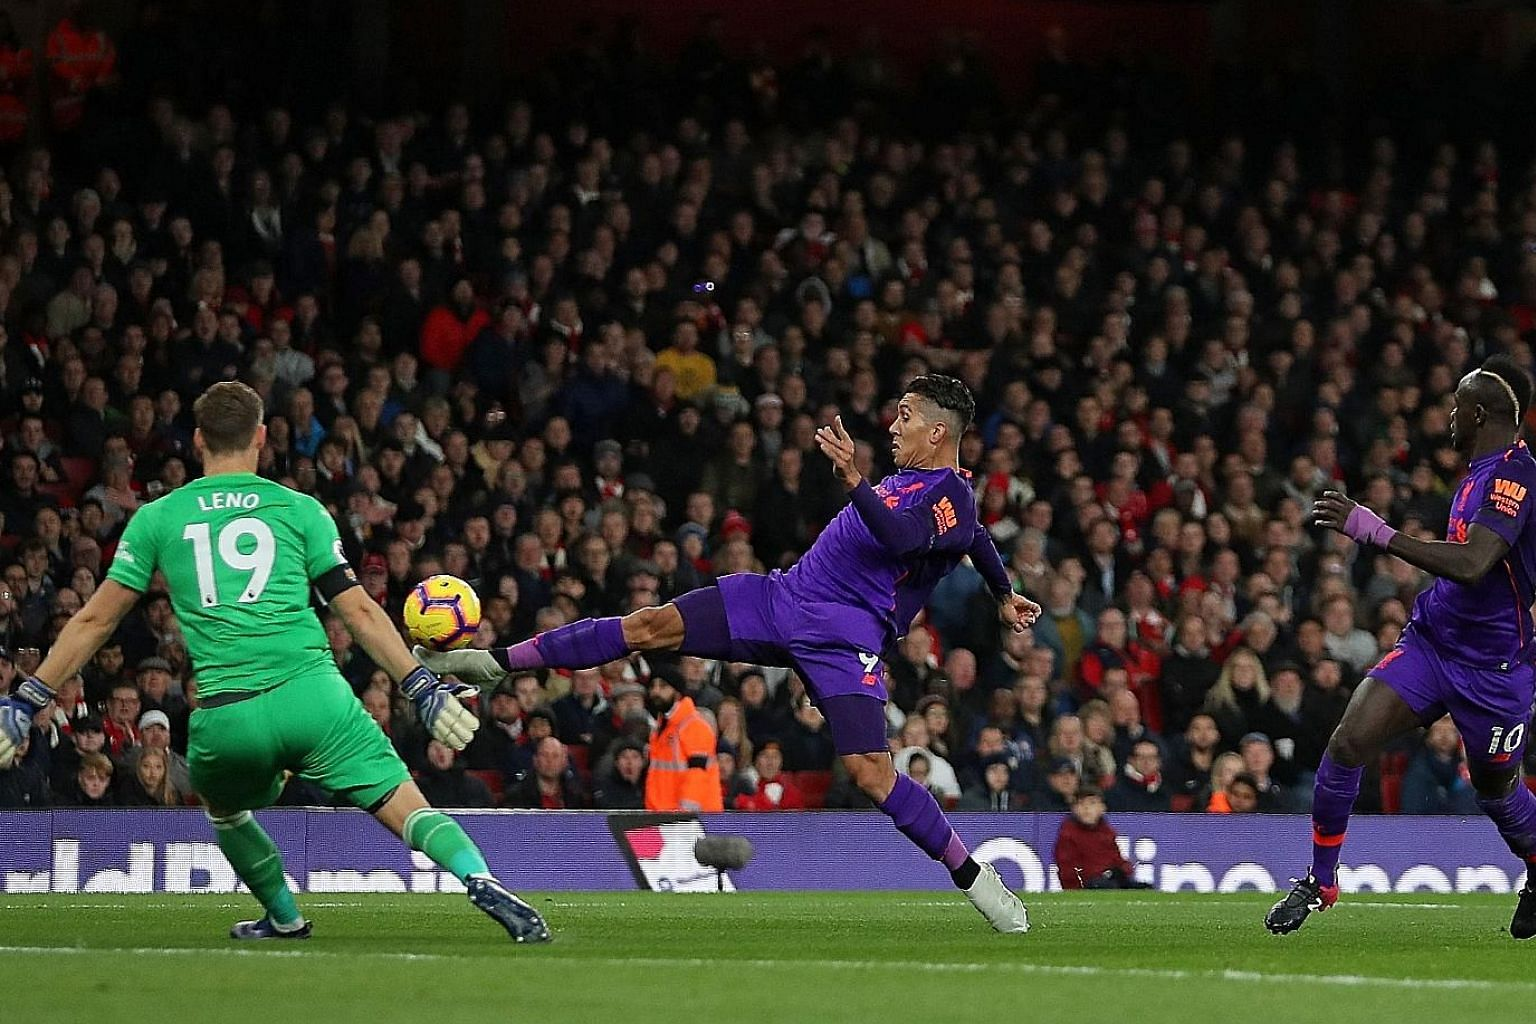 Liverpool's Roberto Firmino lifting a shot over Bernd Leno that beat the Arsenal goalkeeper but not the woodwork. The Brazilian's teammate Sadio Mane (No. 10) tapped home the rebound, only for the goal to be chalked off.